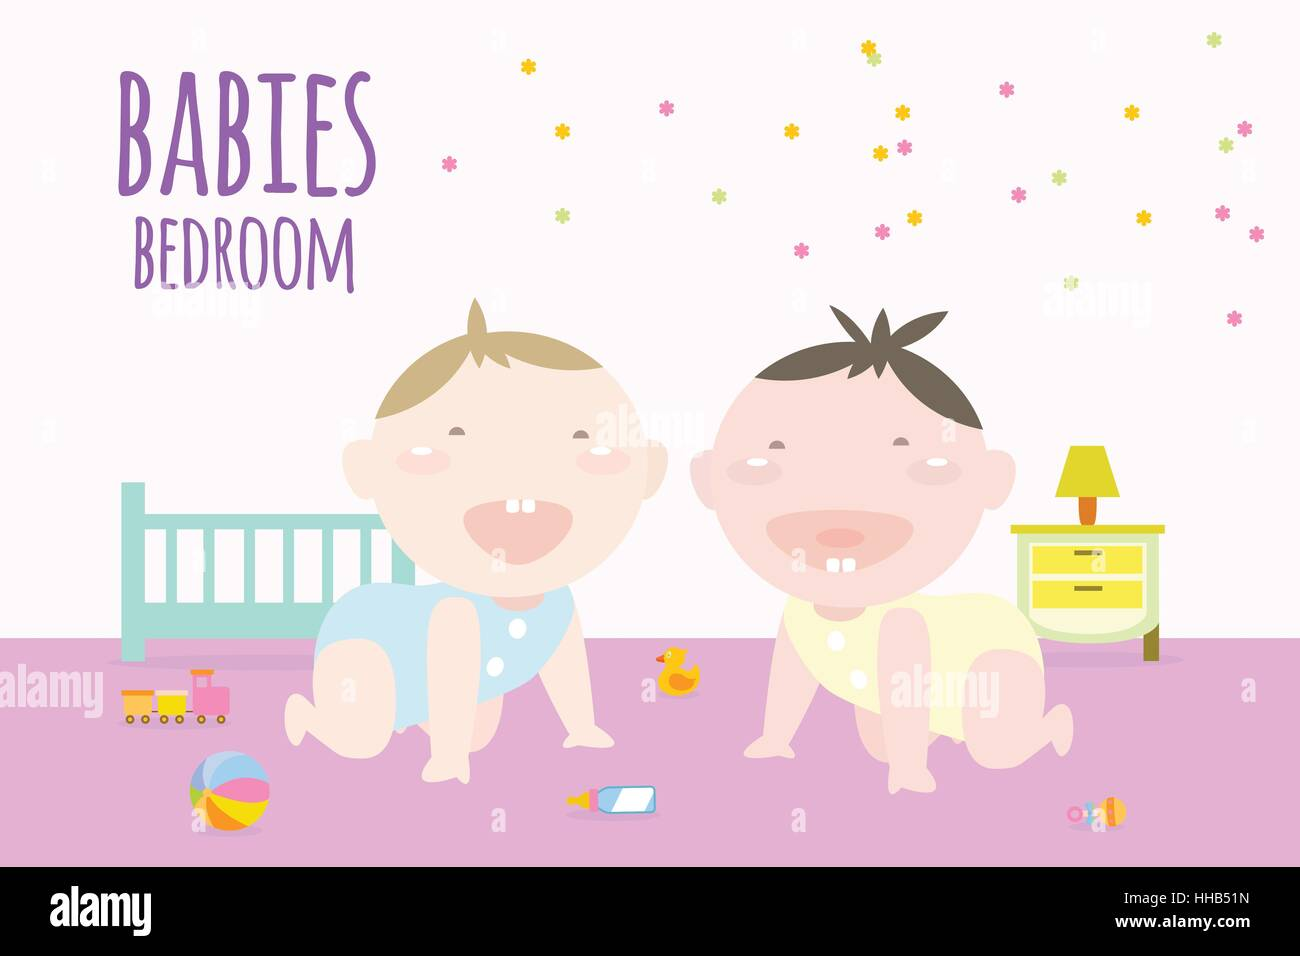 Illustration of babies crawling inside bedroom with elements of childhood. - Stock Vector